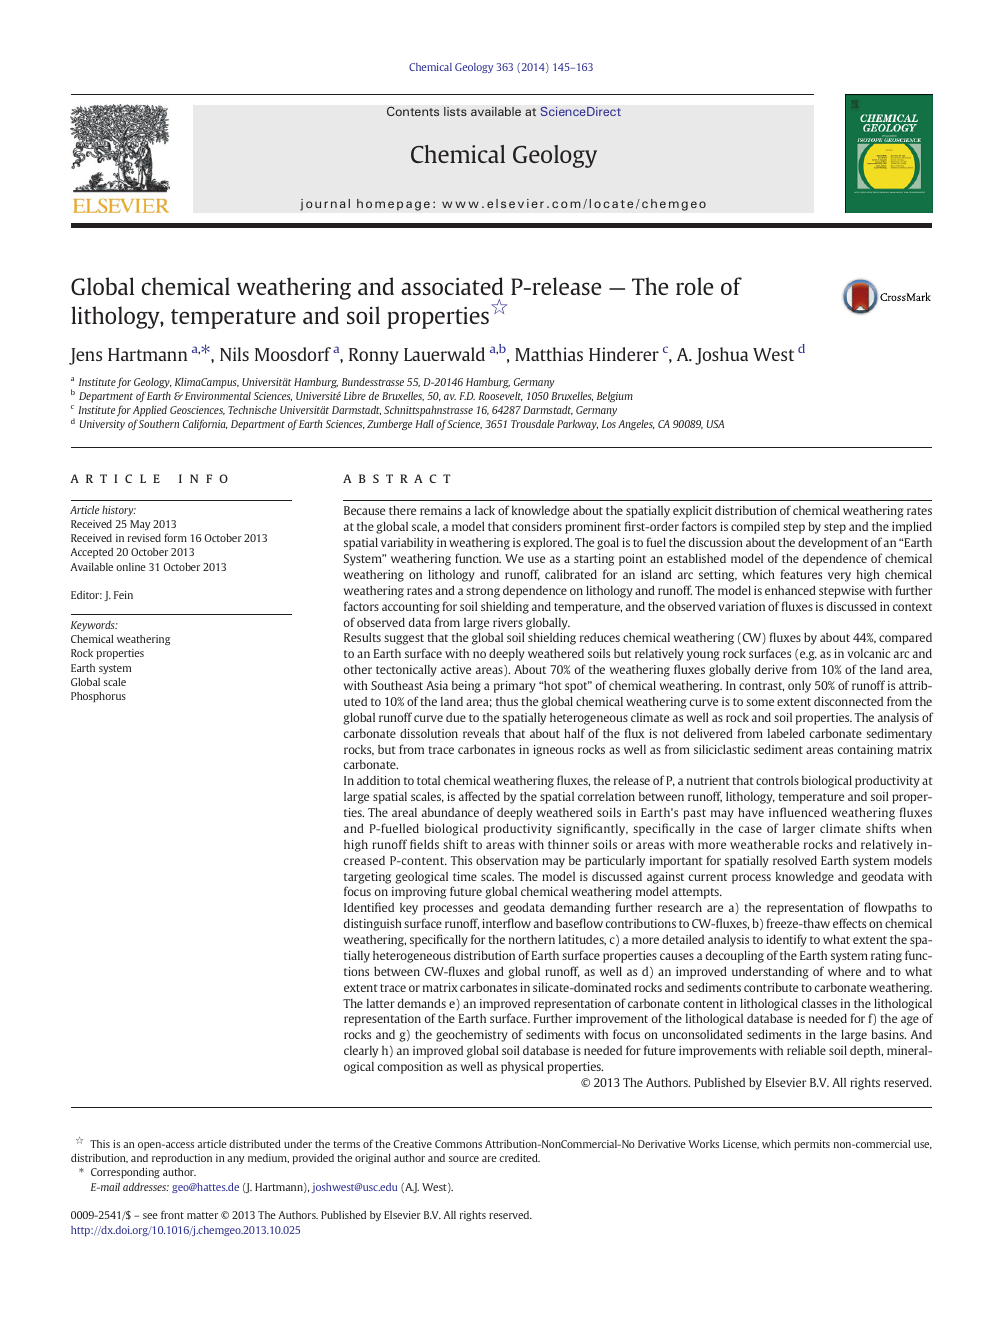 Global chemical weathering and associated P-release — The